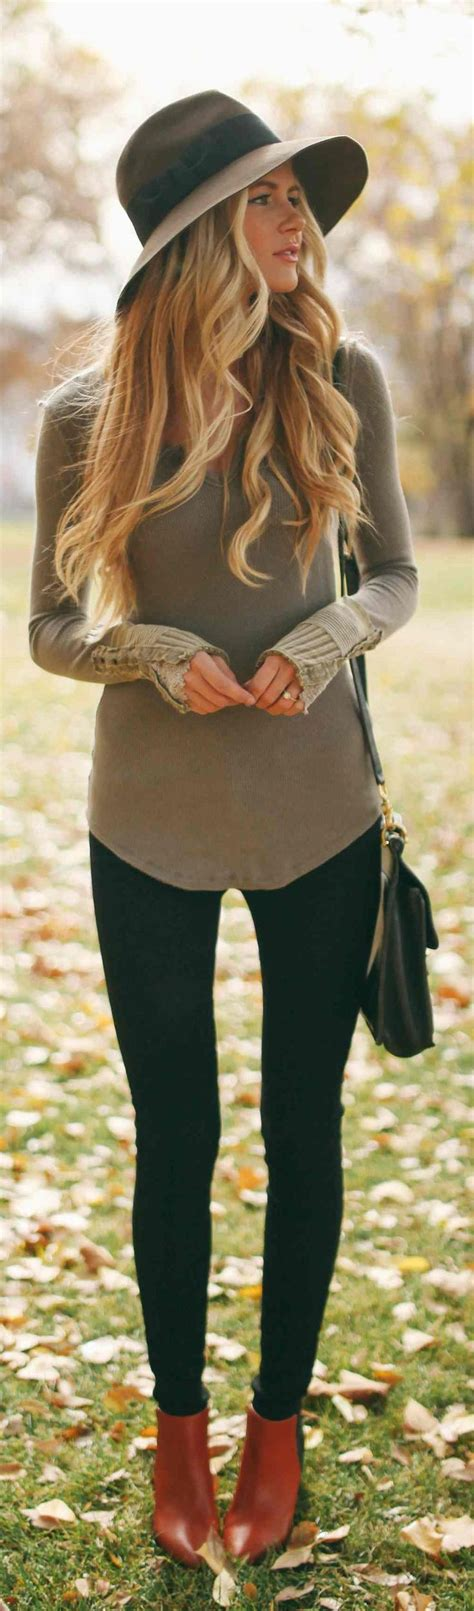 Modern Country Fashion | modern country style modern country style fashion for